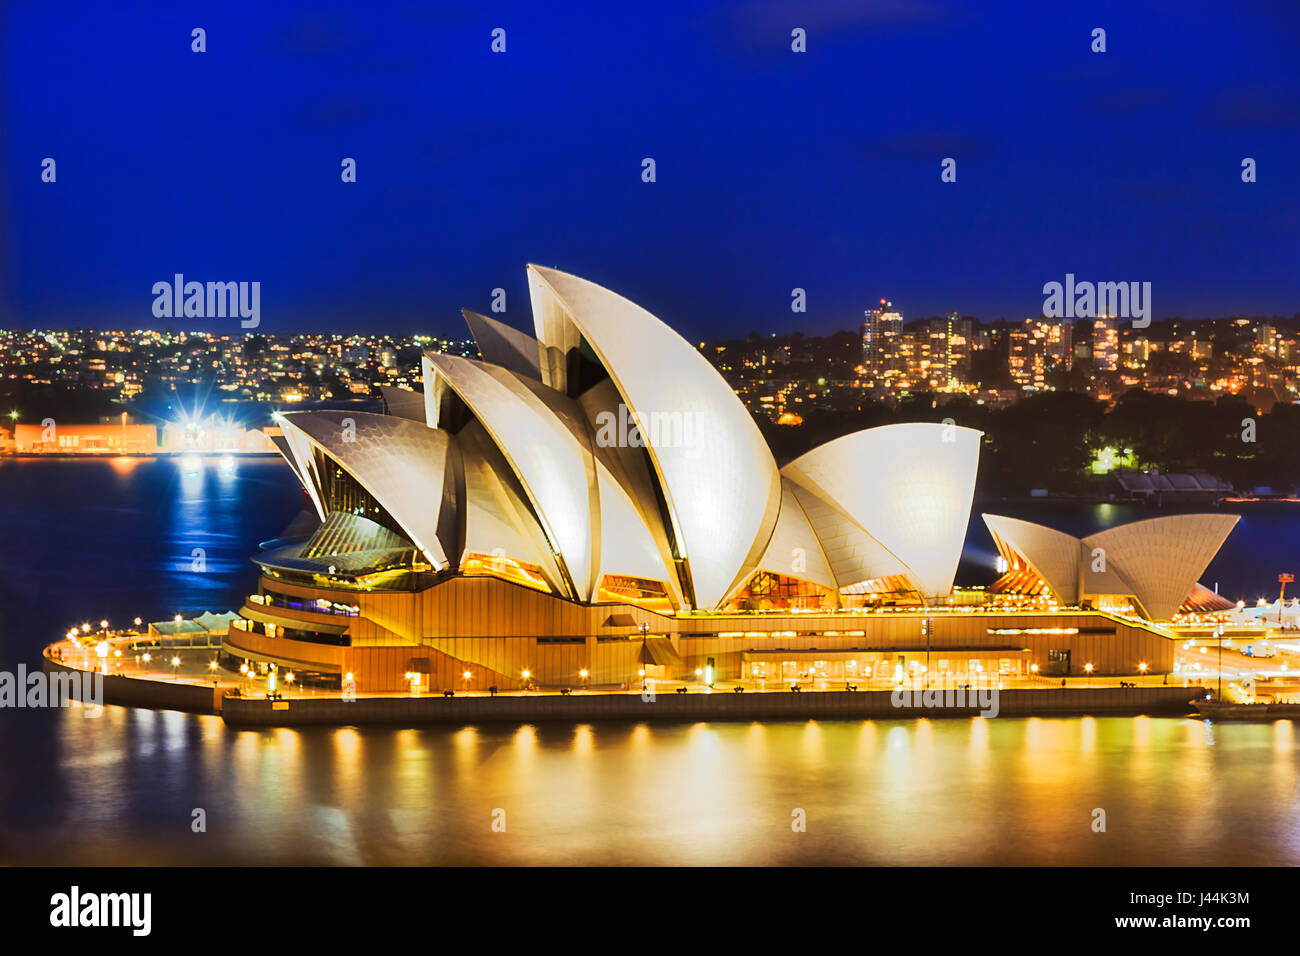 Sydney, Australia - 21 February 2016: Sydney Opera house iconic buiilding with bright illumination as seen from - Stock Image